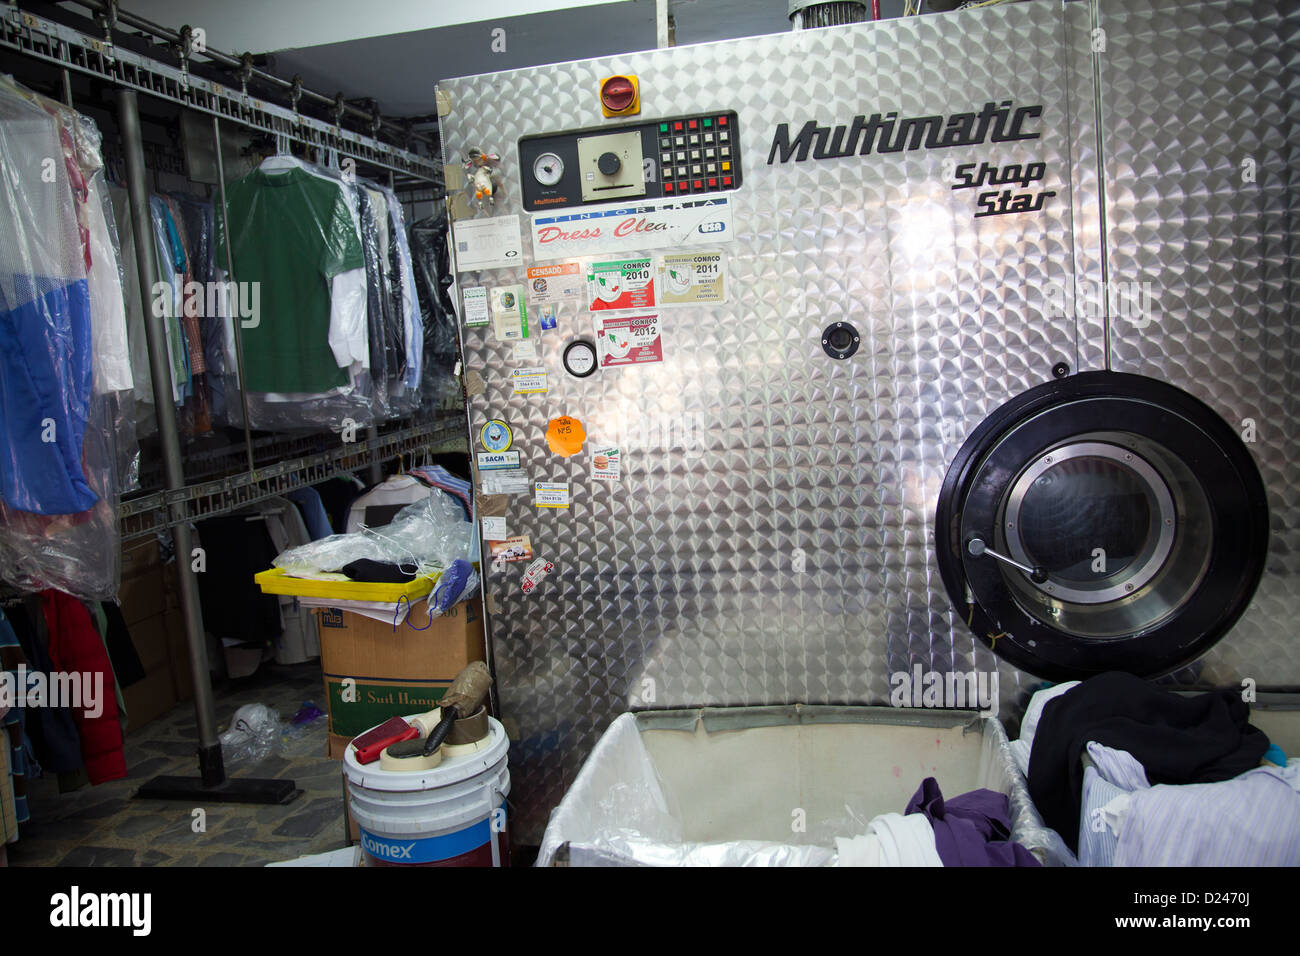 laundromat america stock photos u0026 laundromat america stock images